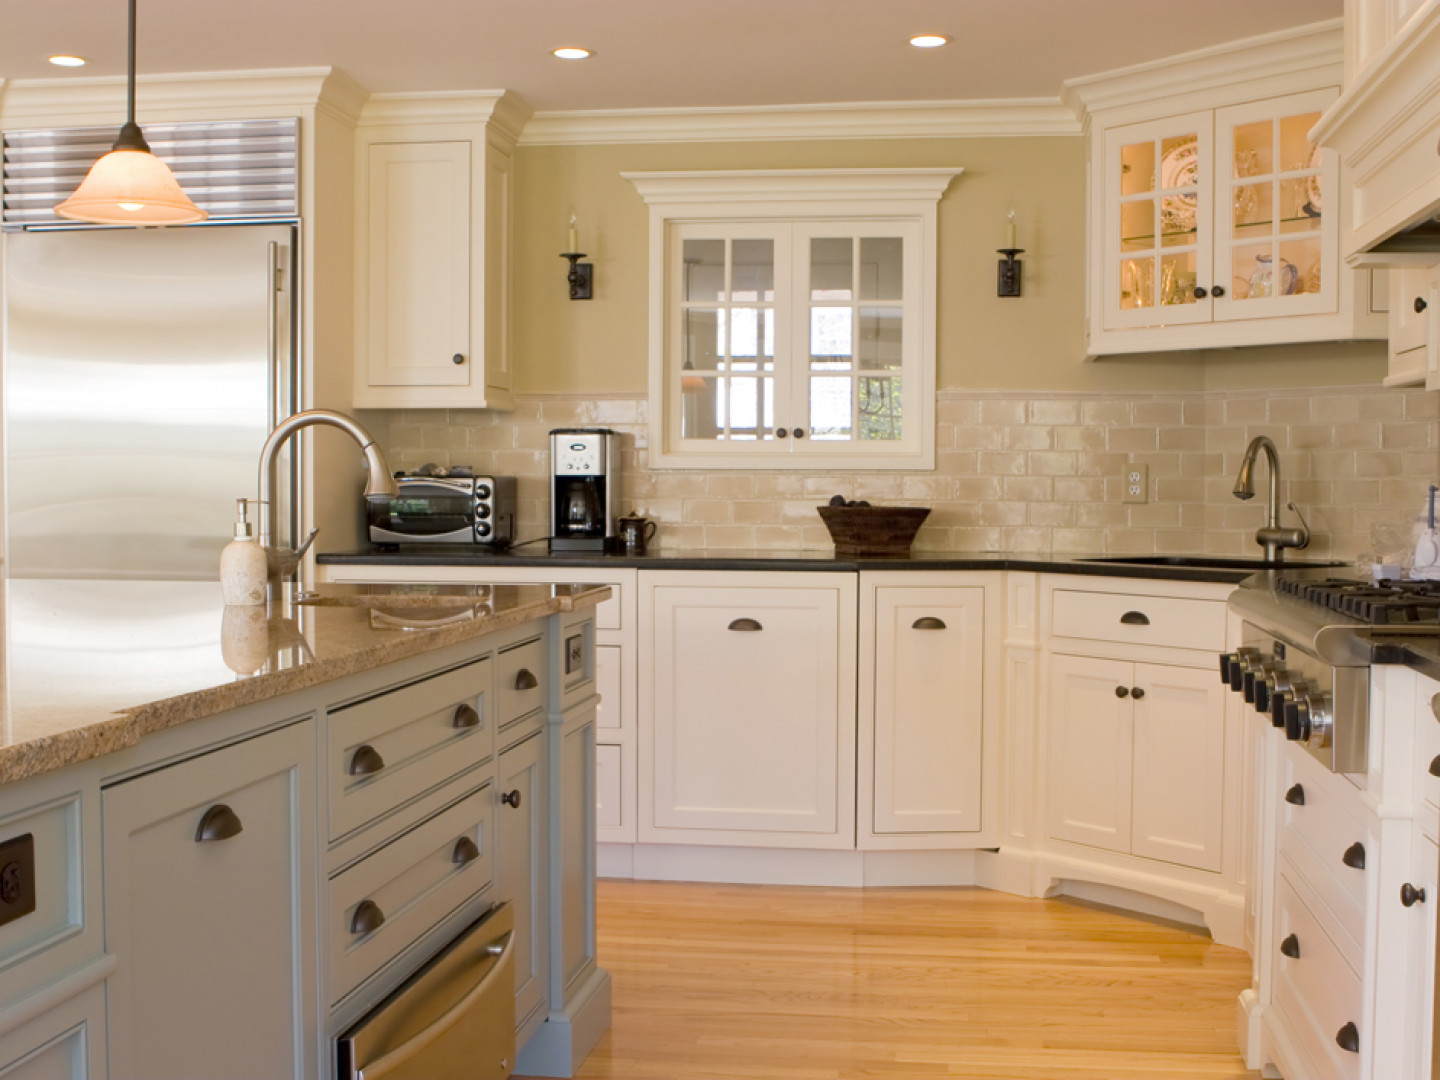 Get a Beautiful, Spotless Kitchen